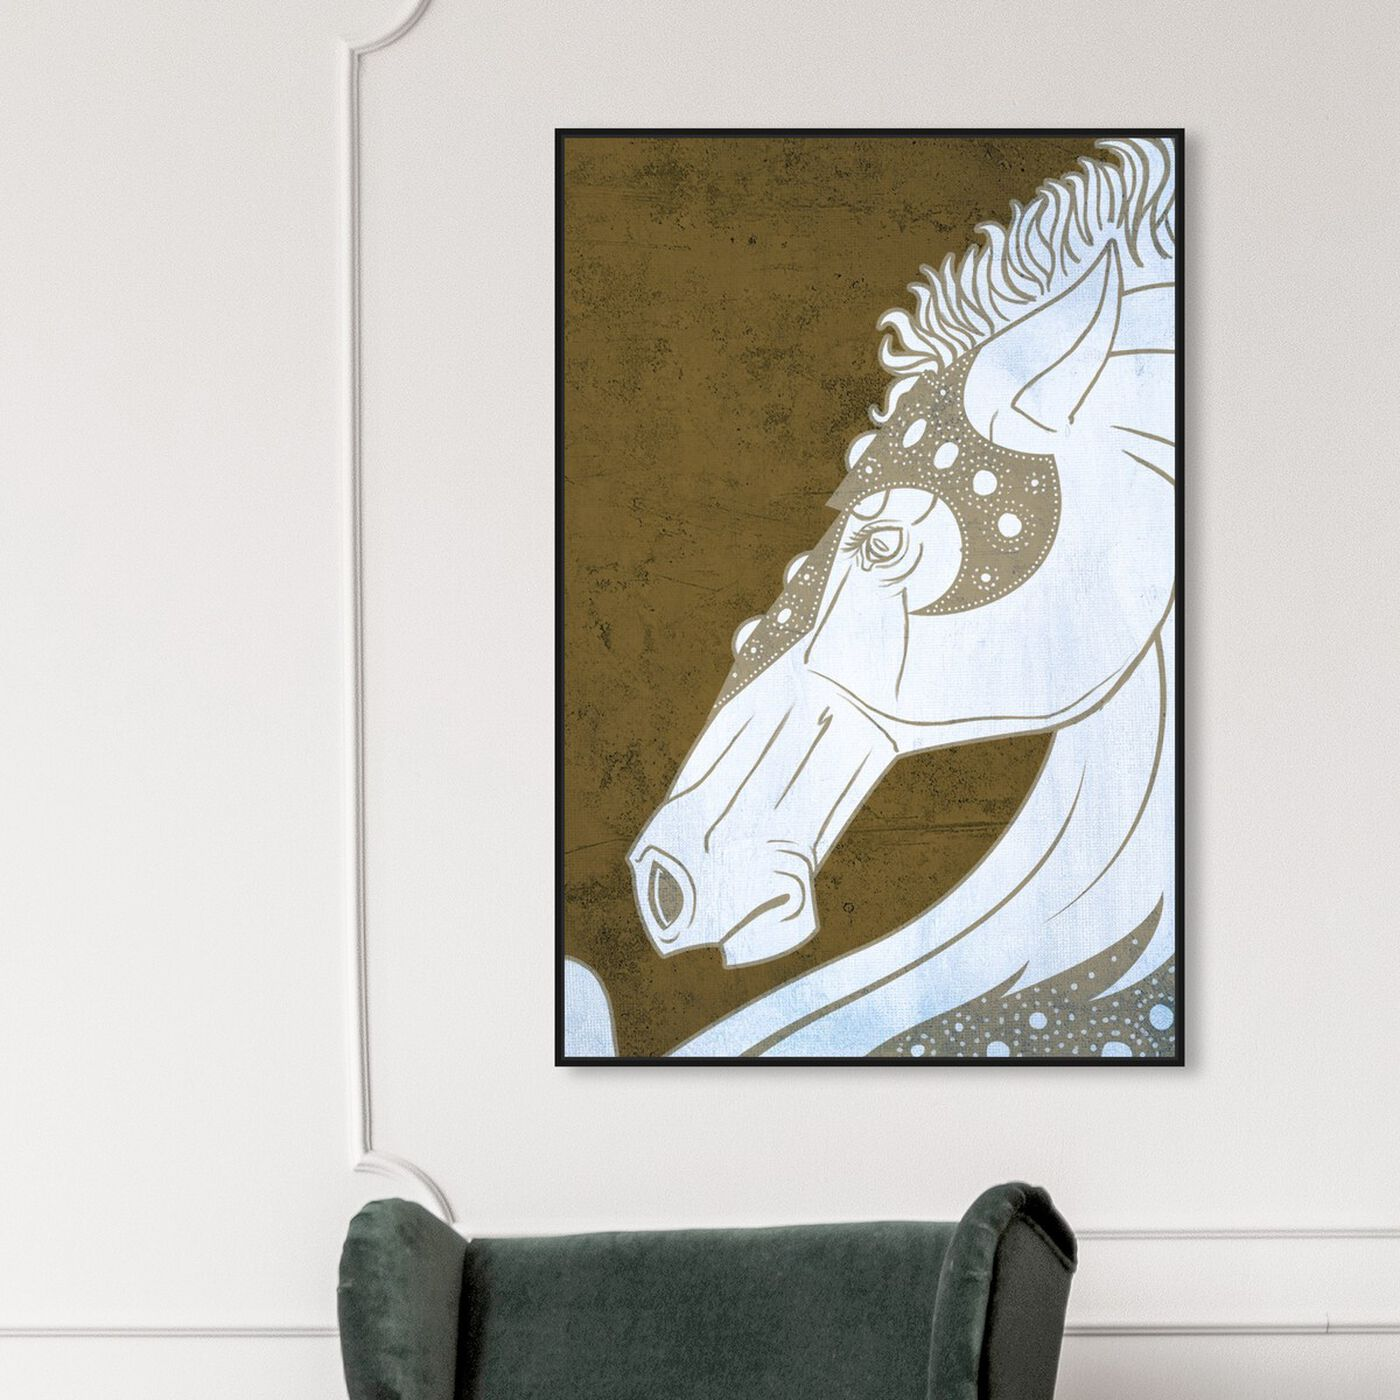 Hanging view of Gold Stallion featuring animals and farm animals art.